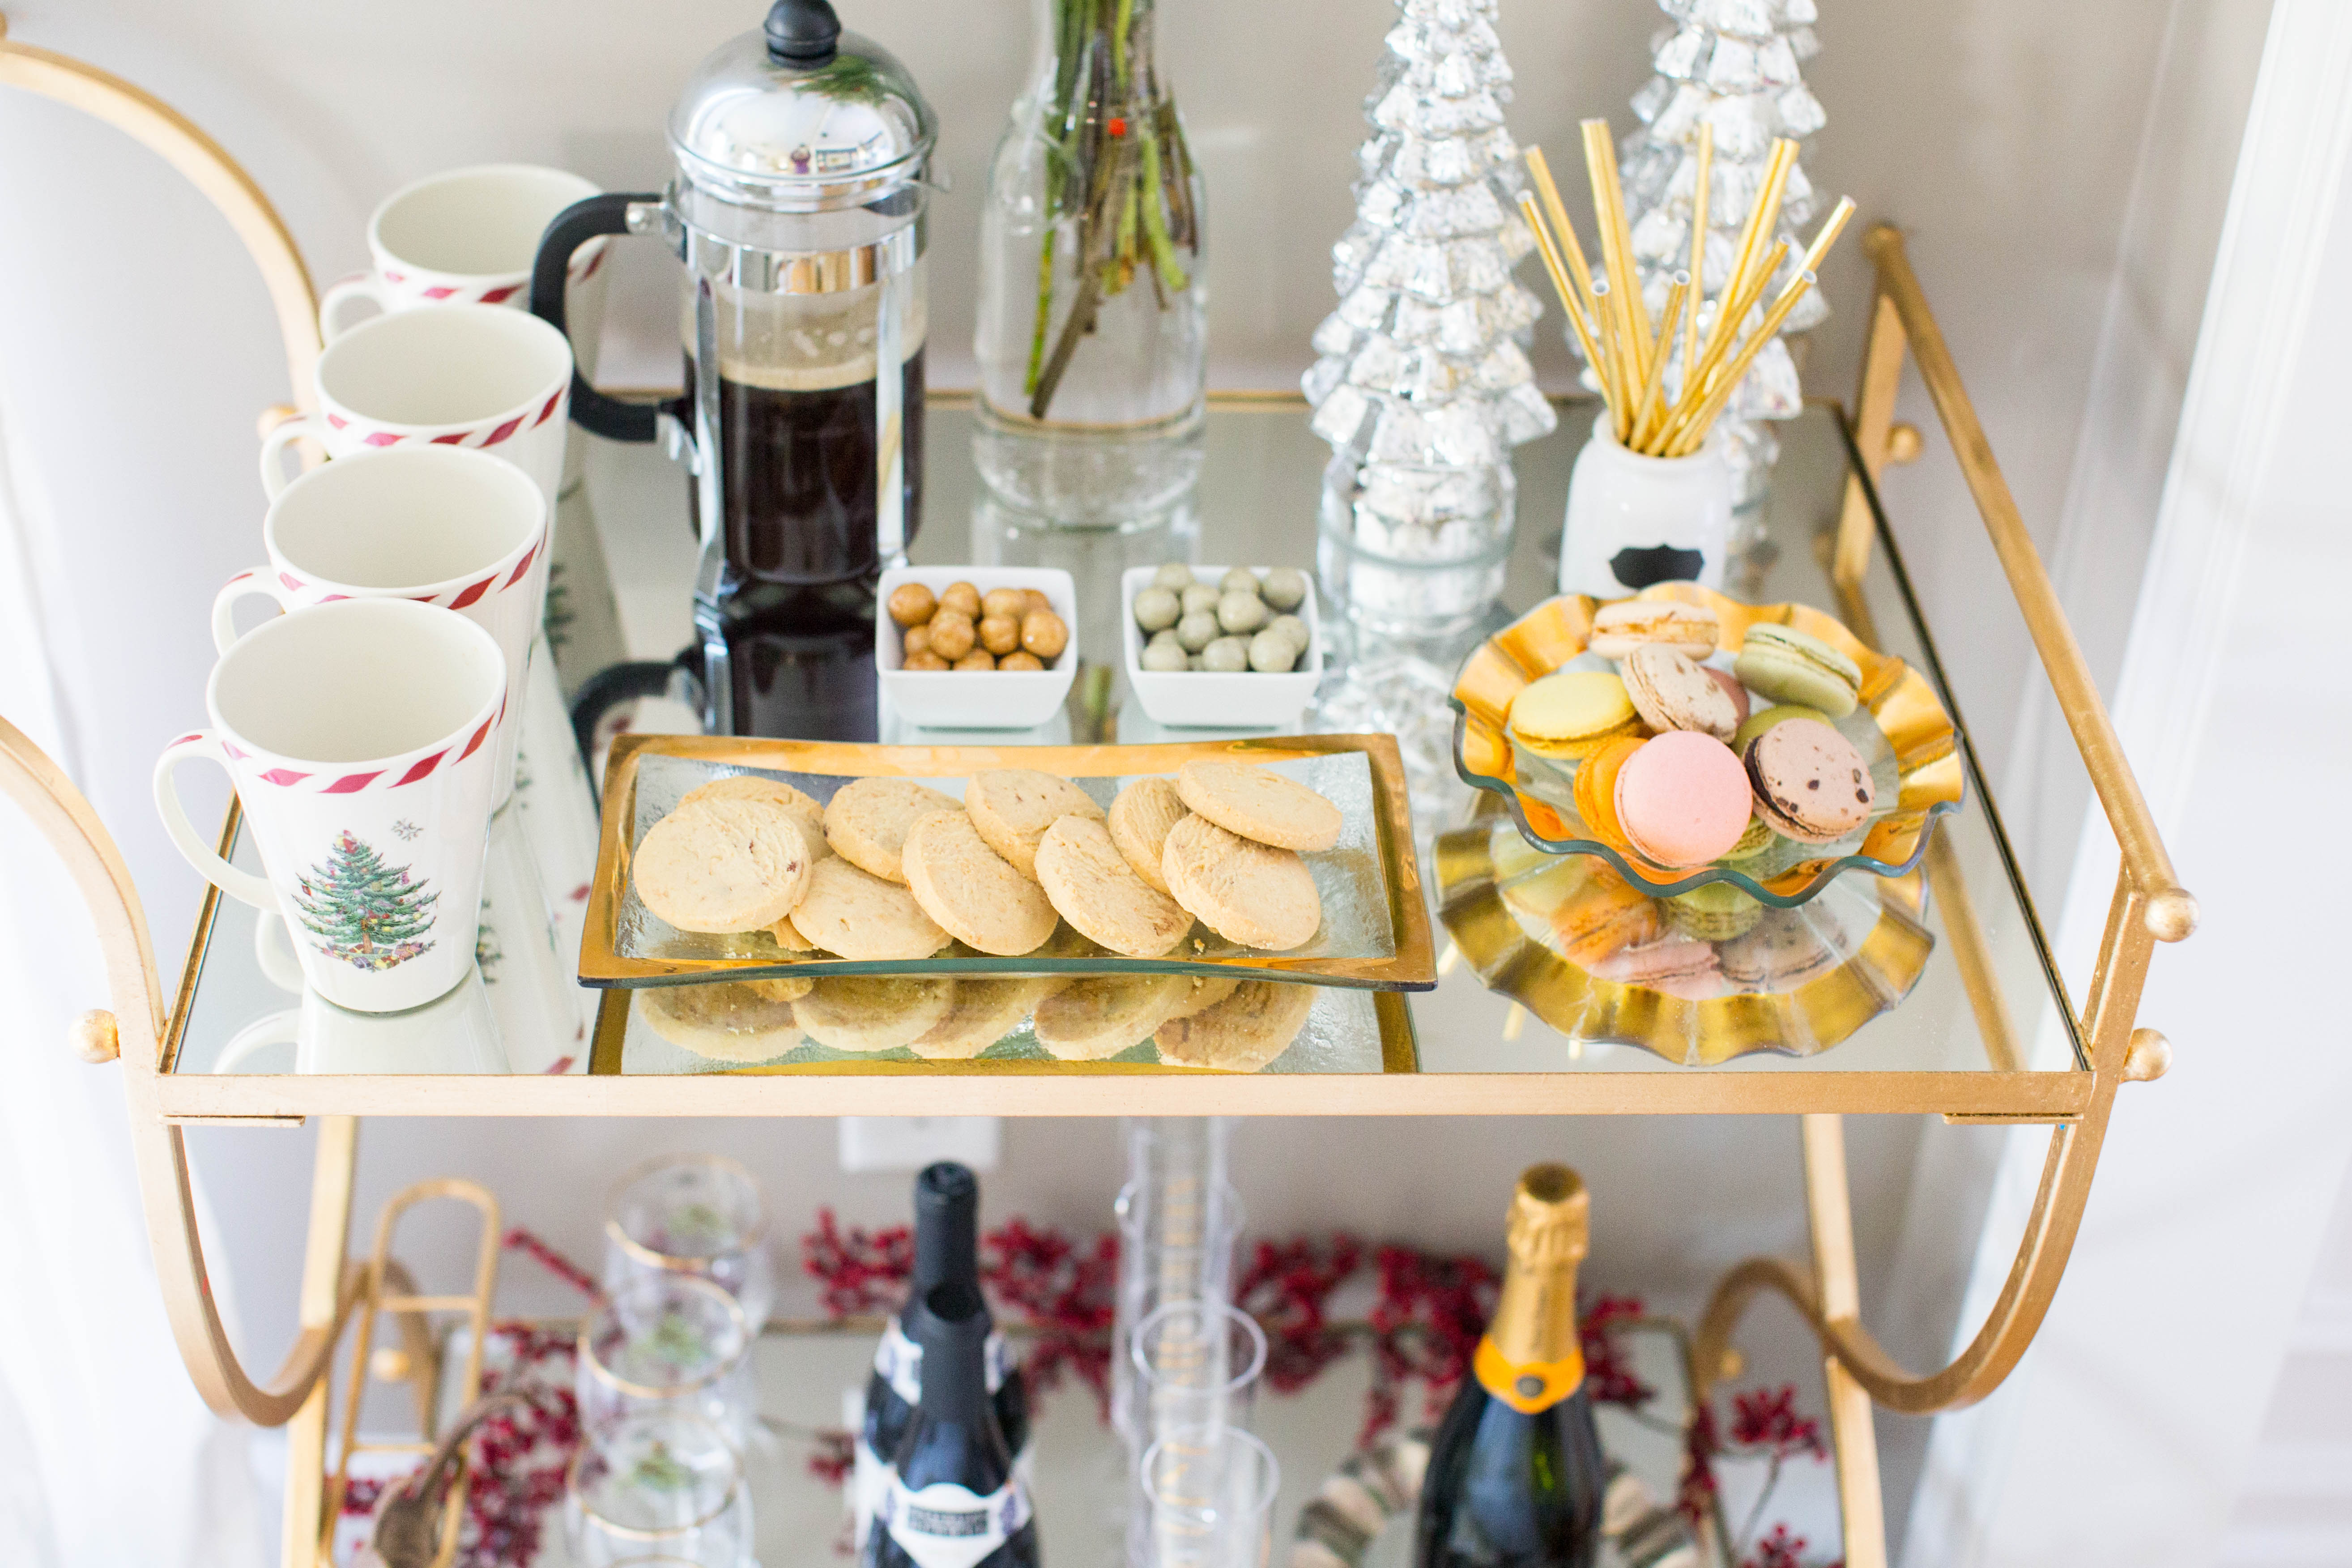 img_3934 - 3 Awesome Holiday Bar Cart Ideas by North Carolina style blogger Coffee Beans and Bobby Pins